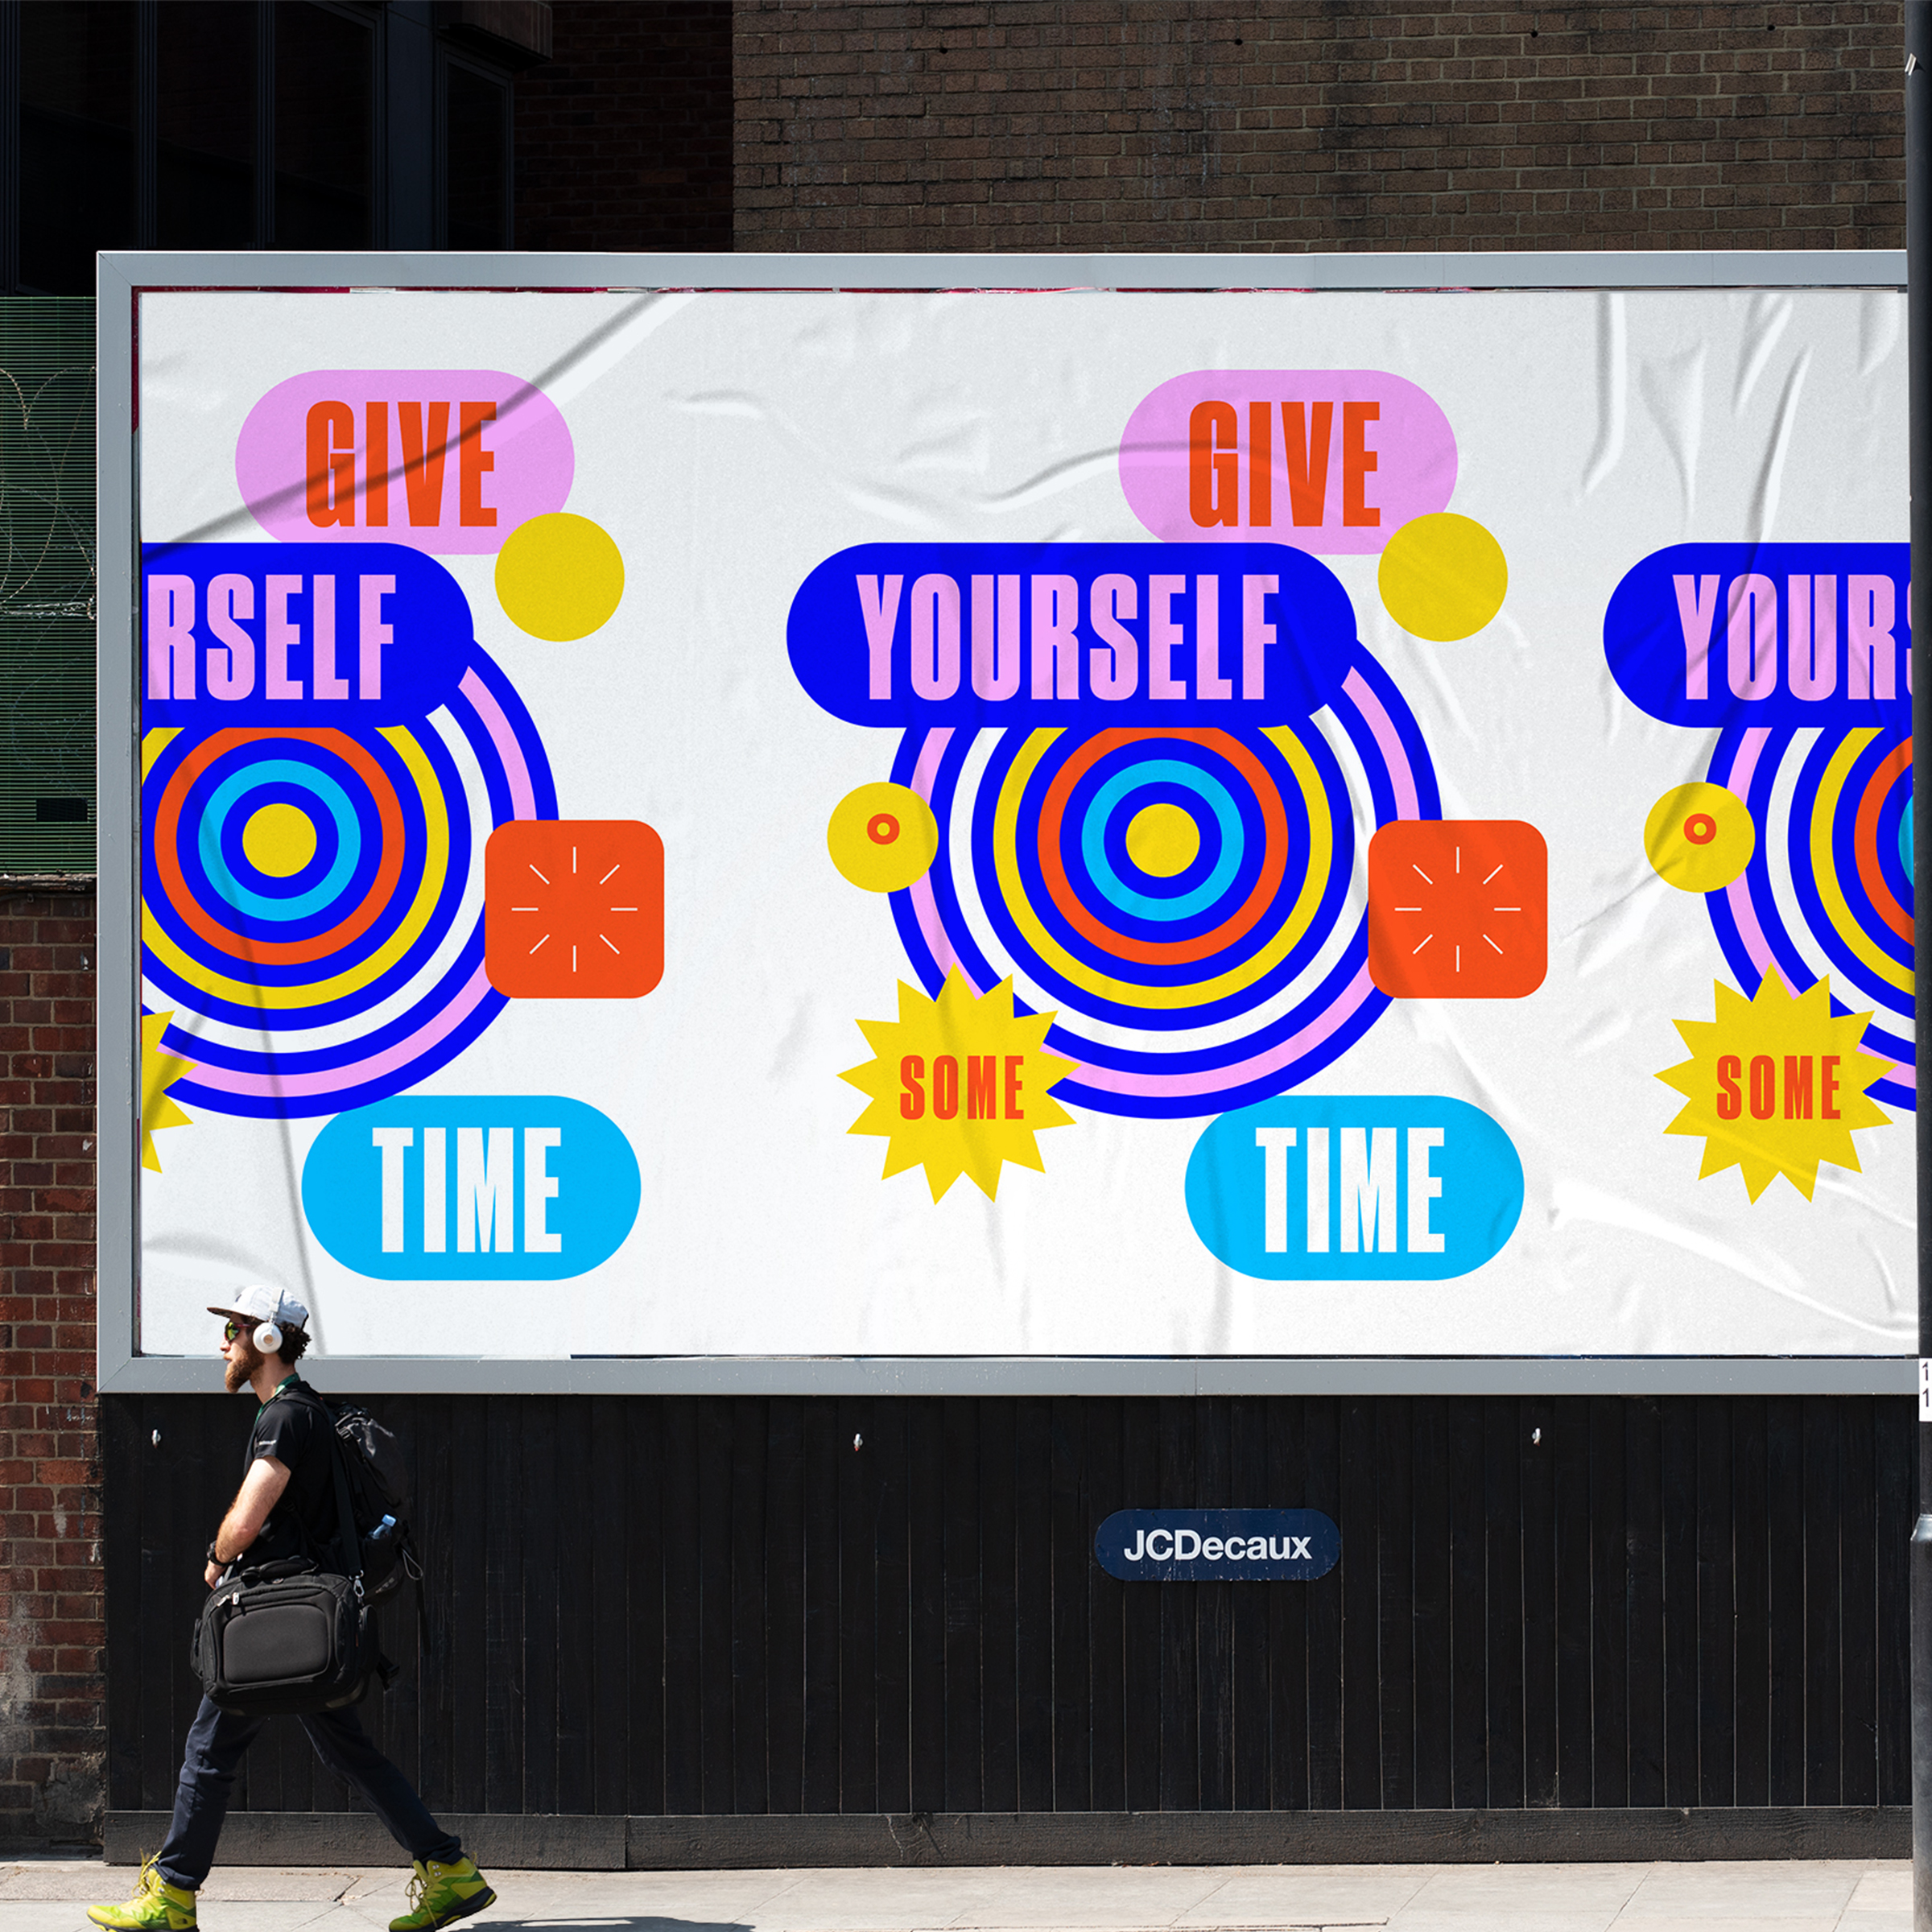 """A photograph of a person walking in front of a graphic billboard that repeats the phrase """"Give Yourself Some Time"""" in bold, bright colors."""